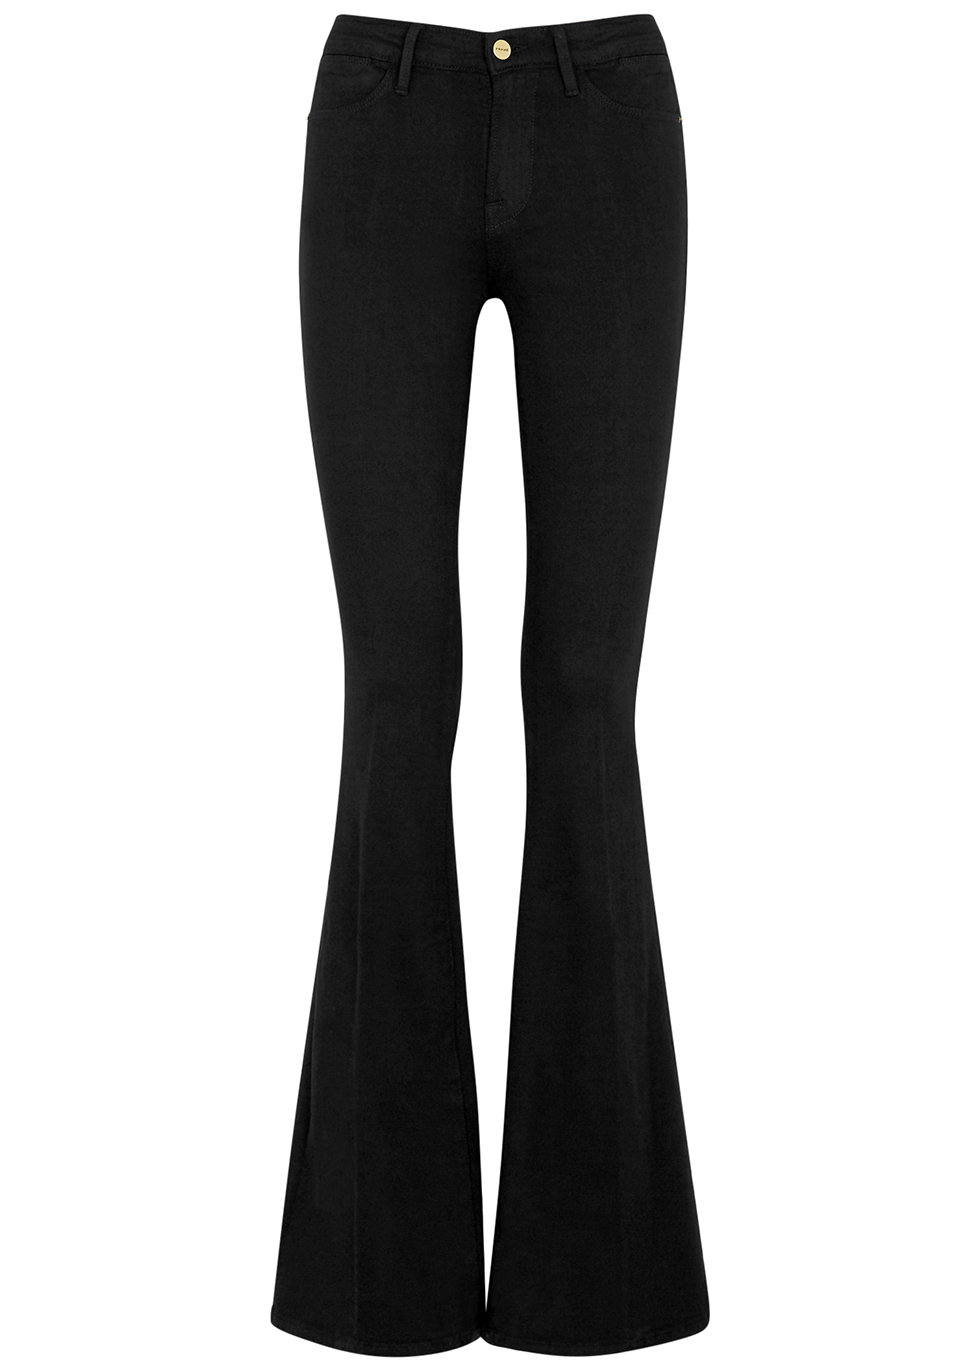 Le High Flare black flared jeans